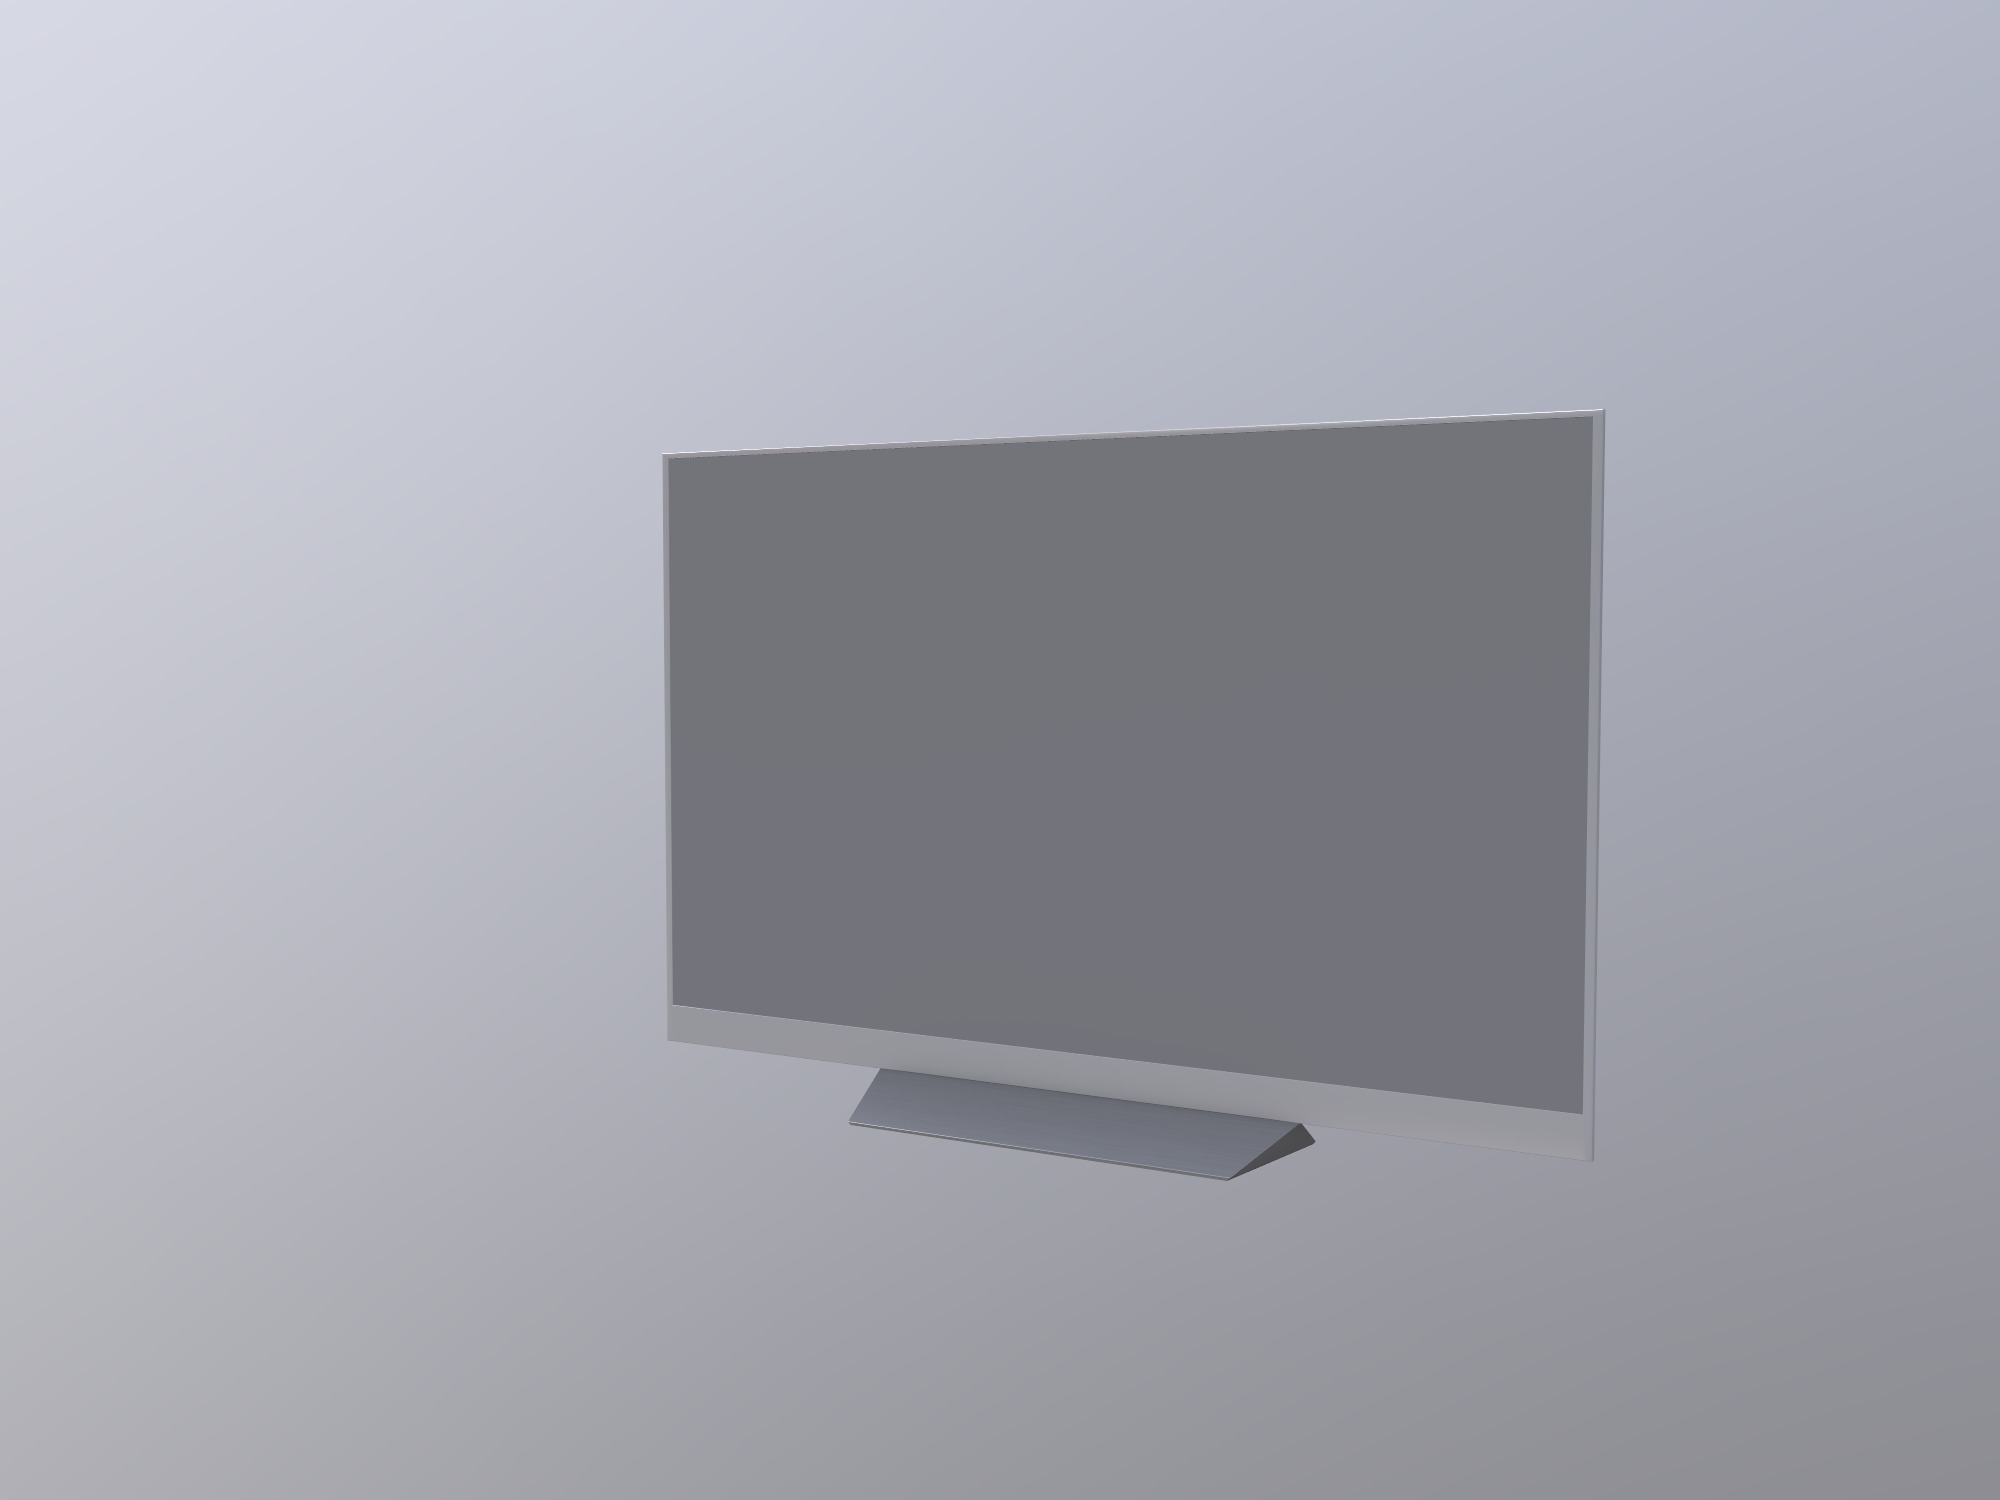 LG OLED55E8_55 - 3D design by Ivan  Korotkov on Dec 10, 2018